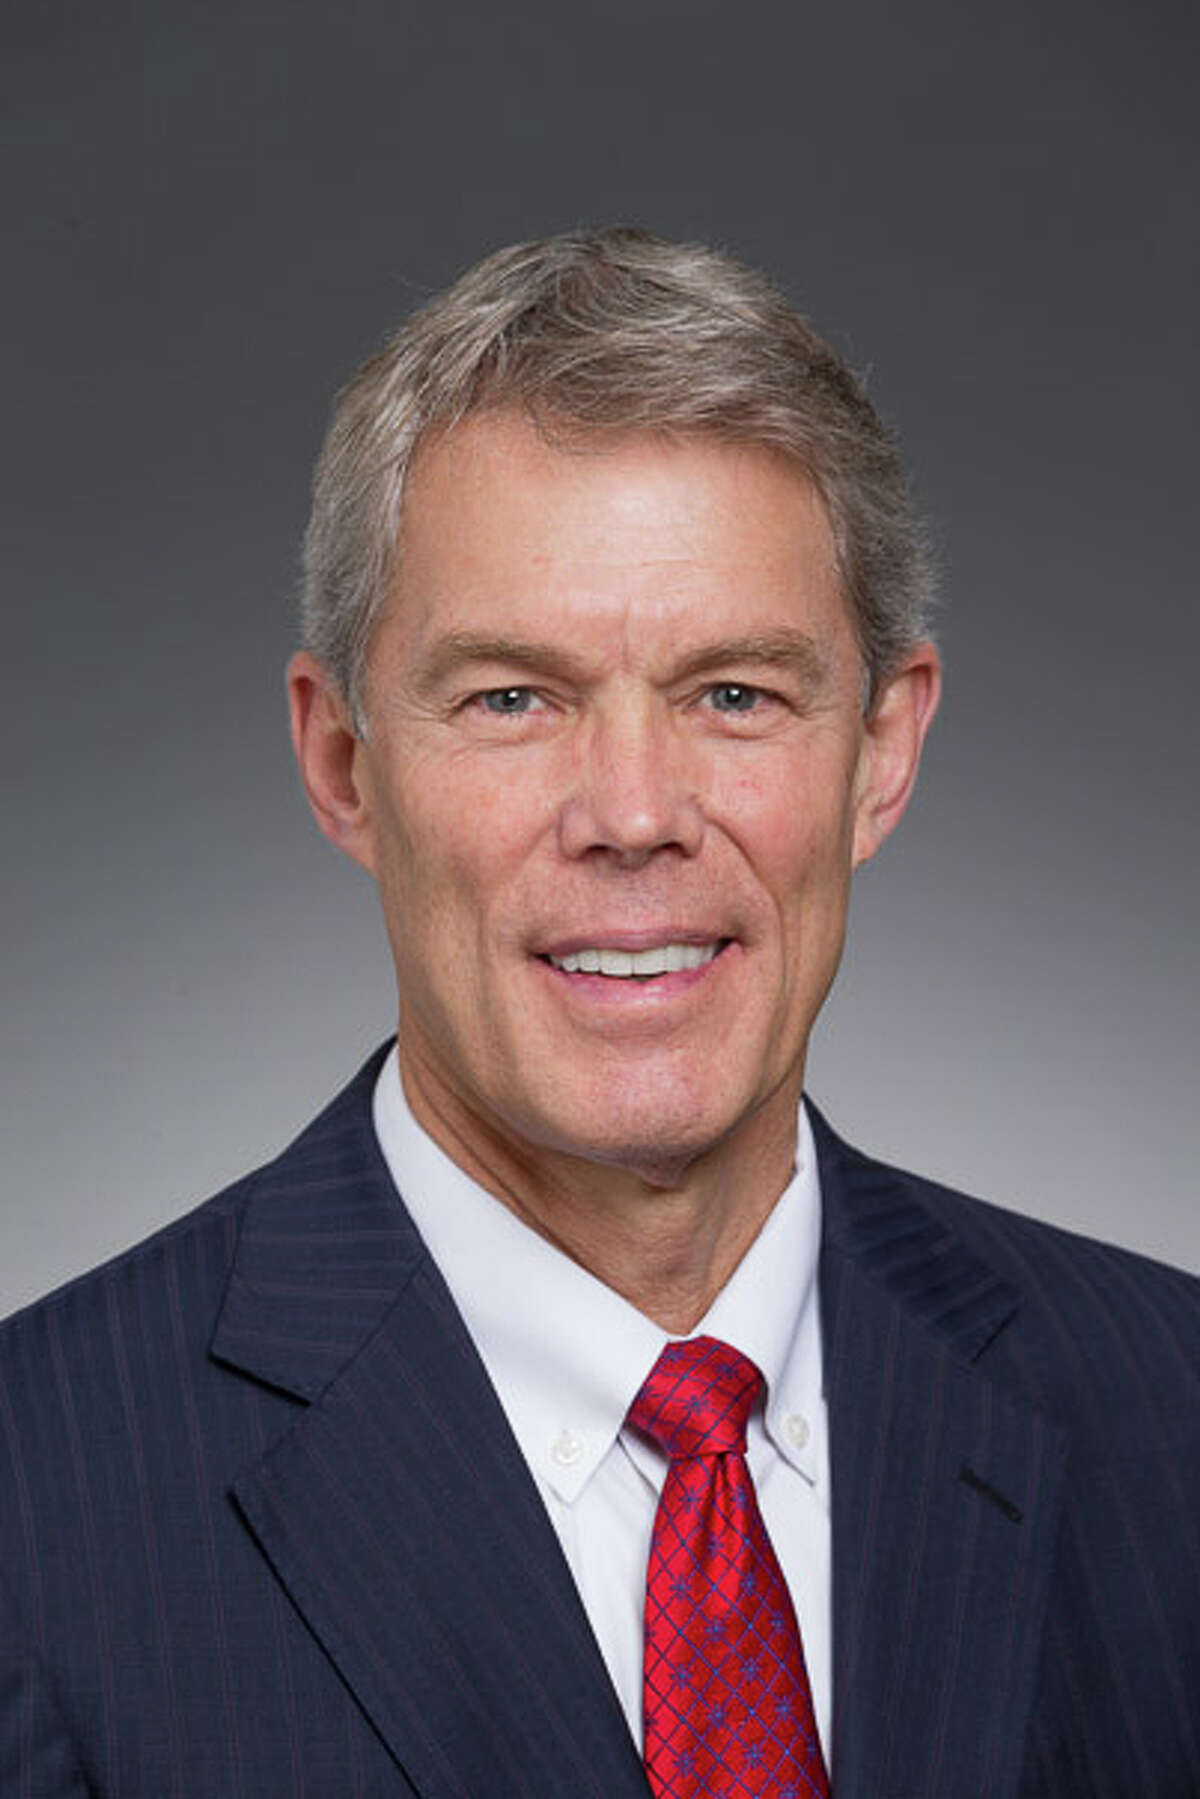 Chris Steele has joined Chevron Africa and Latin America in Houston as general manager of strategy, planning and commercial. During his more than 35 years with Chevron, Steele has held positions of increasing responsibility in the U.S. and internationally.